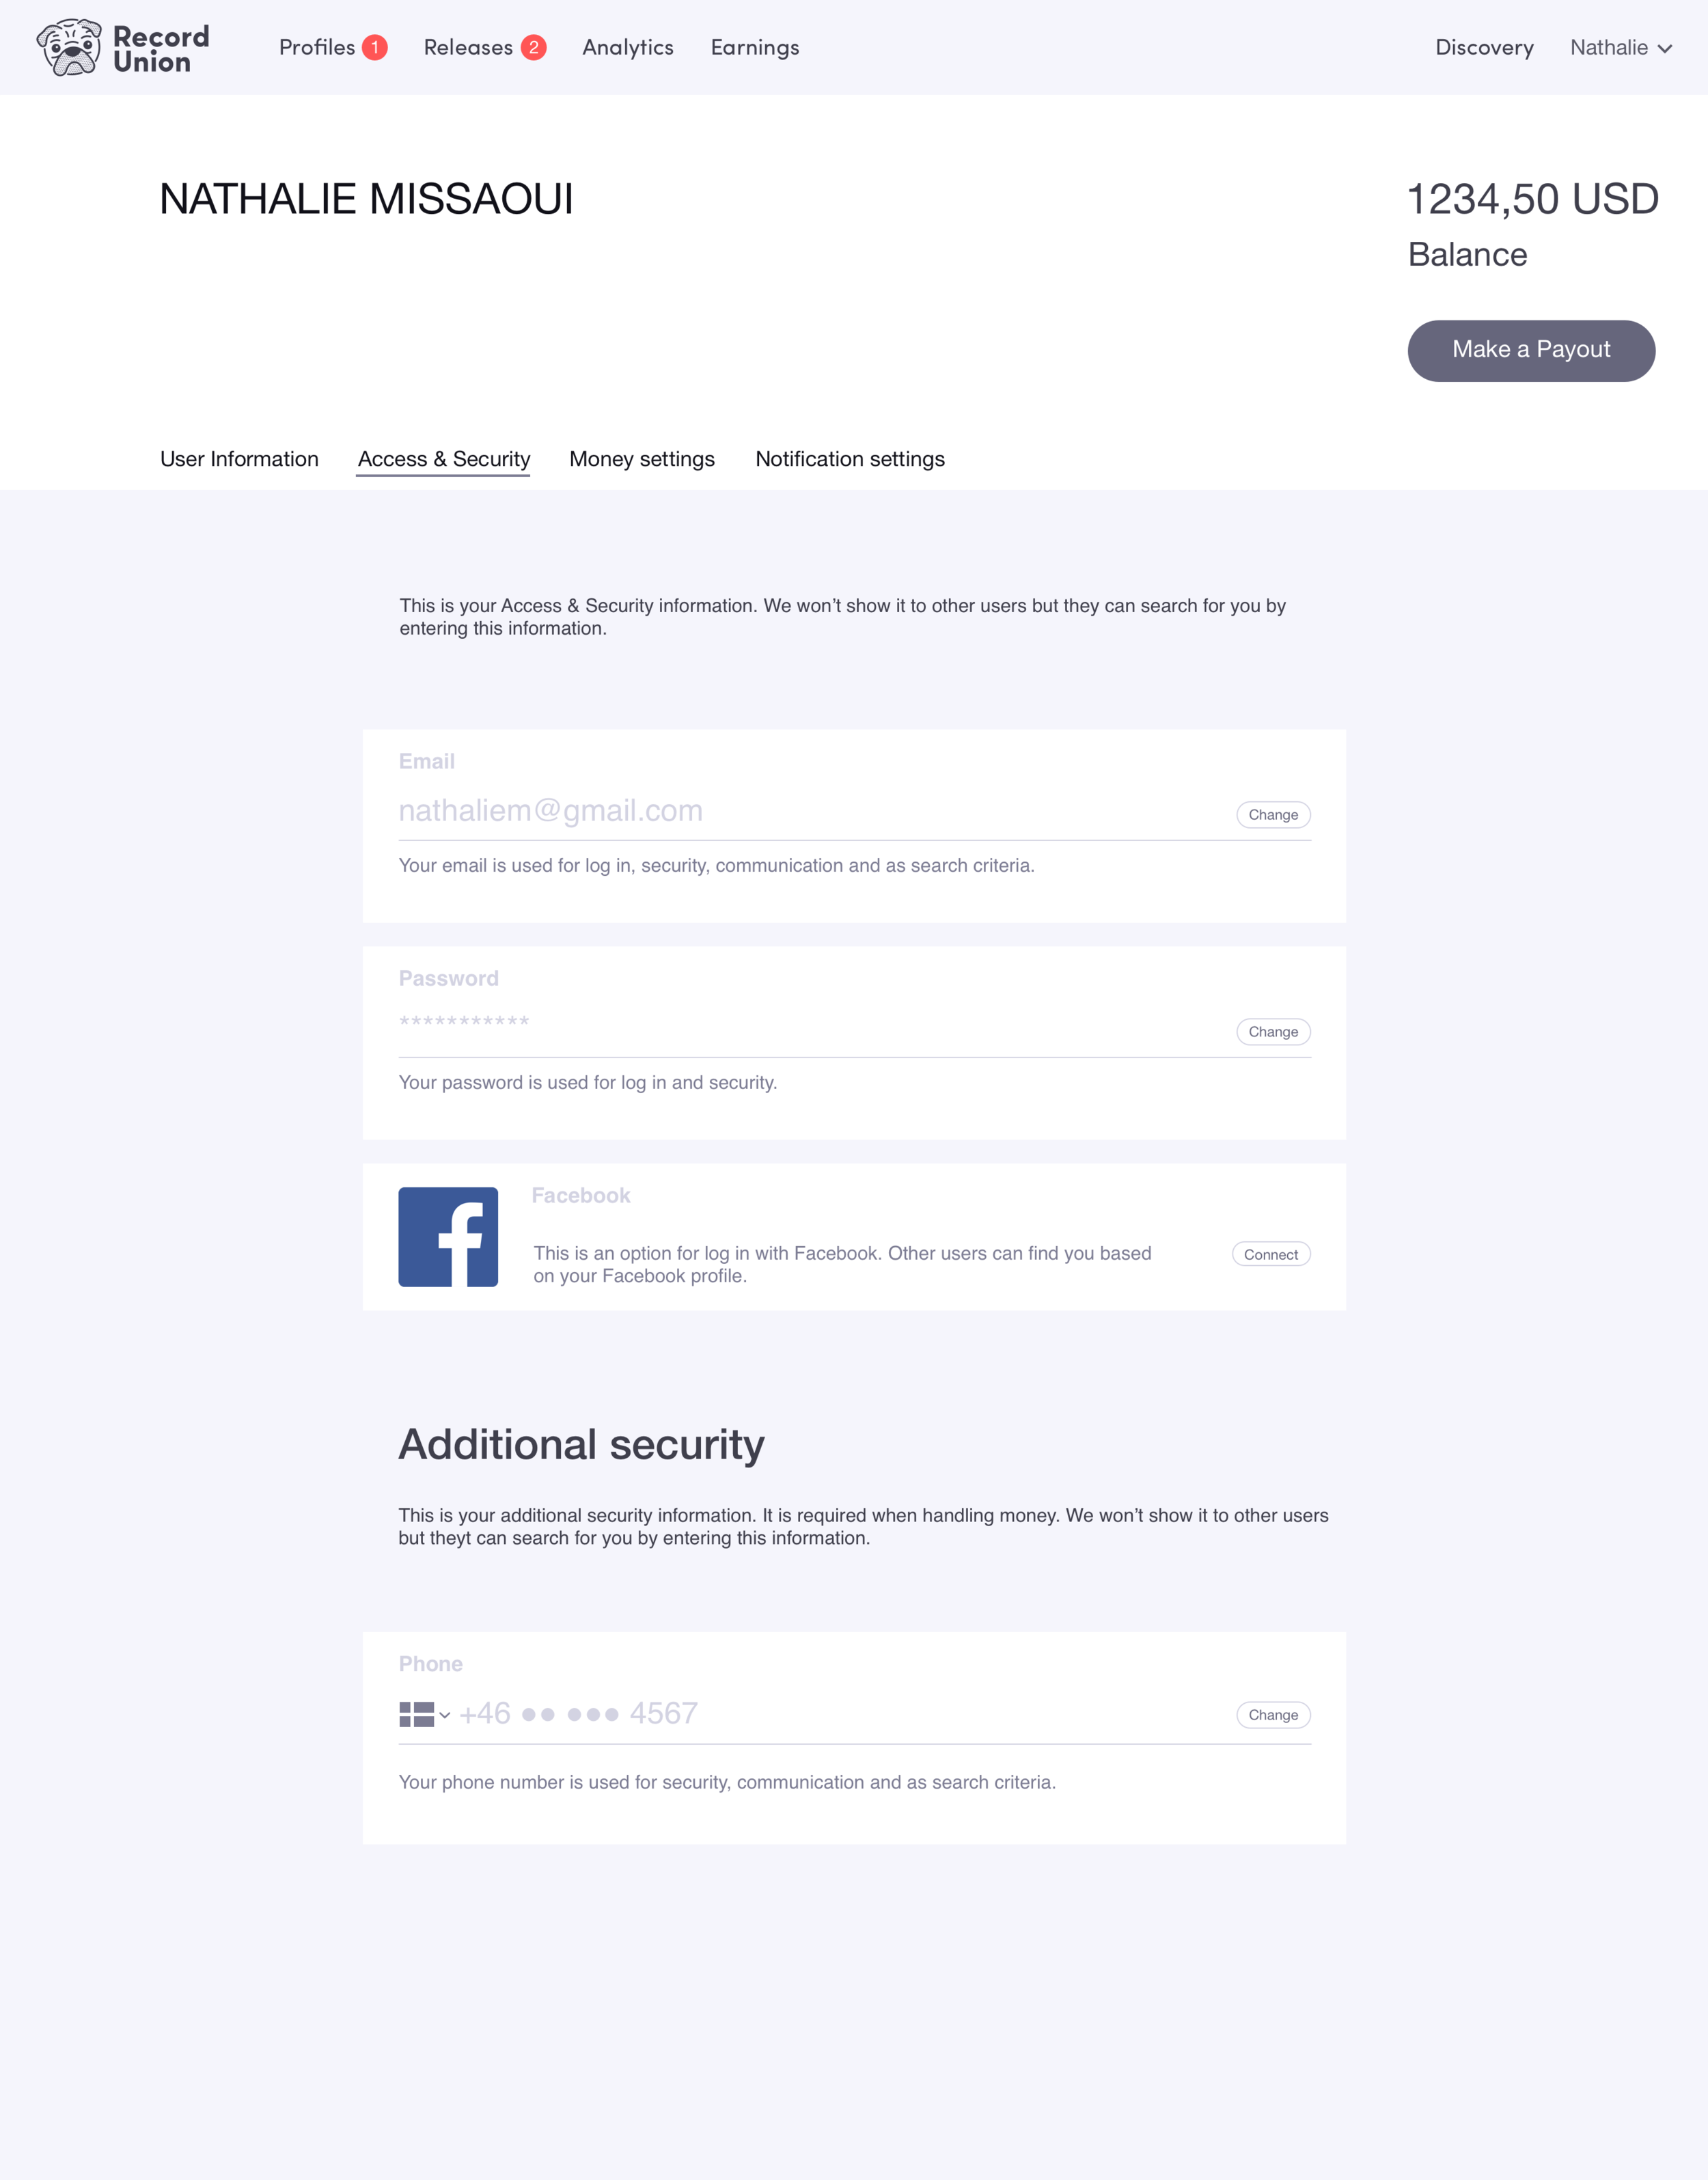 Click the image to open InVision prototype for user journey: Change Password.